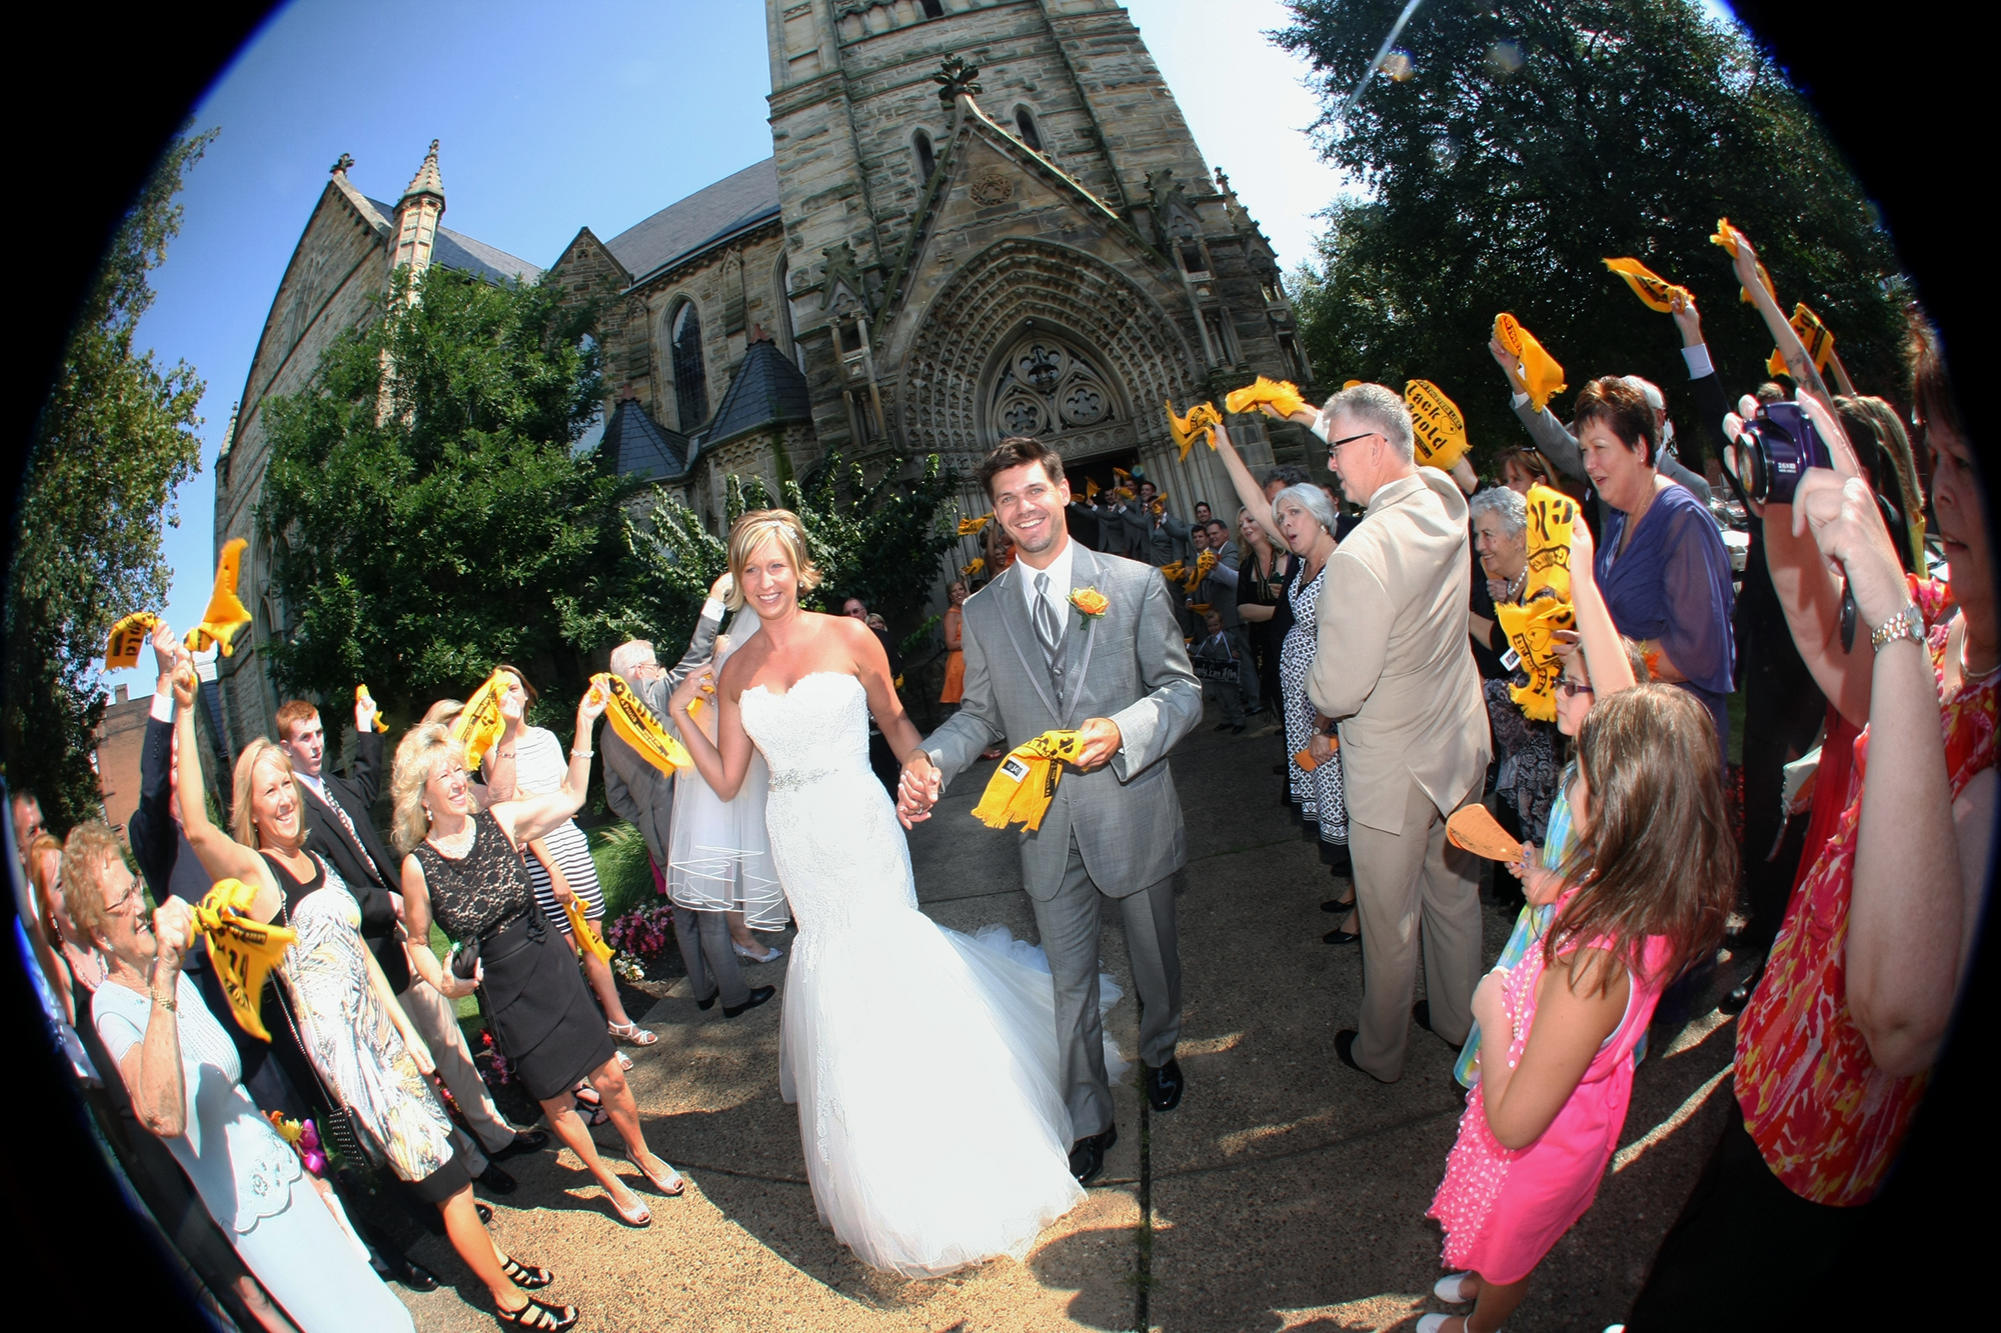 Laura Ann And Patrick Got Married At A Church Before Heading To The Reception Heinz